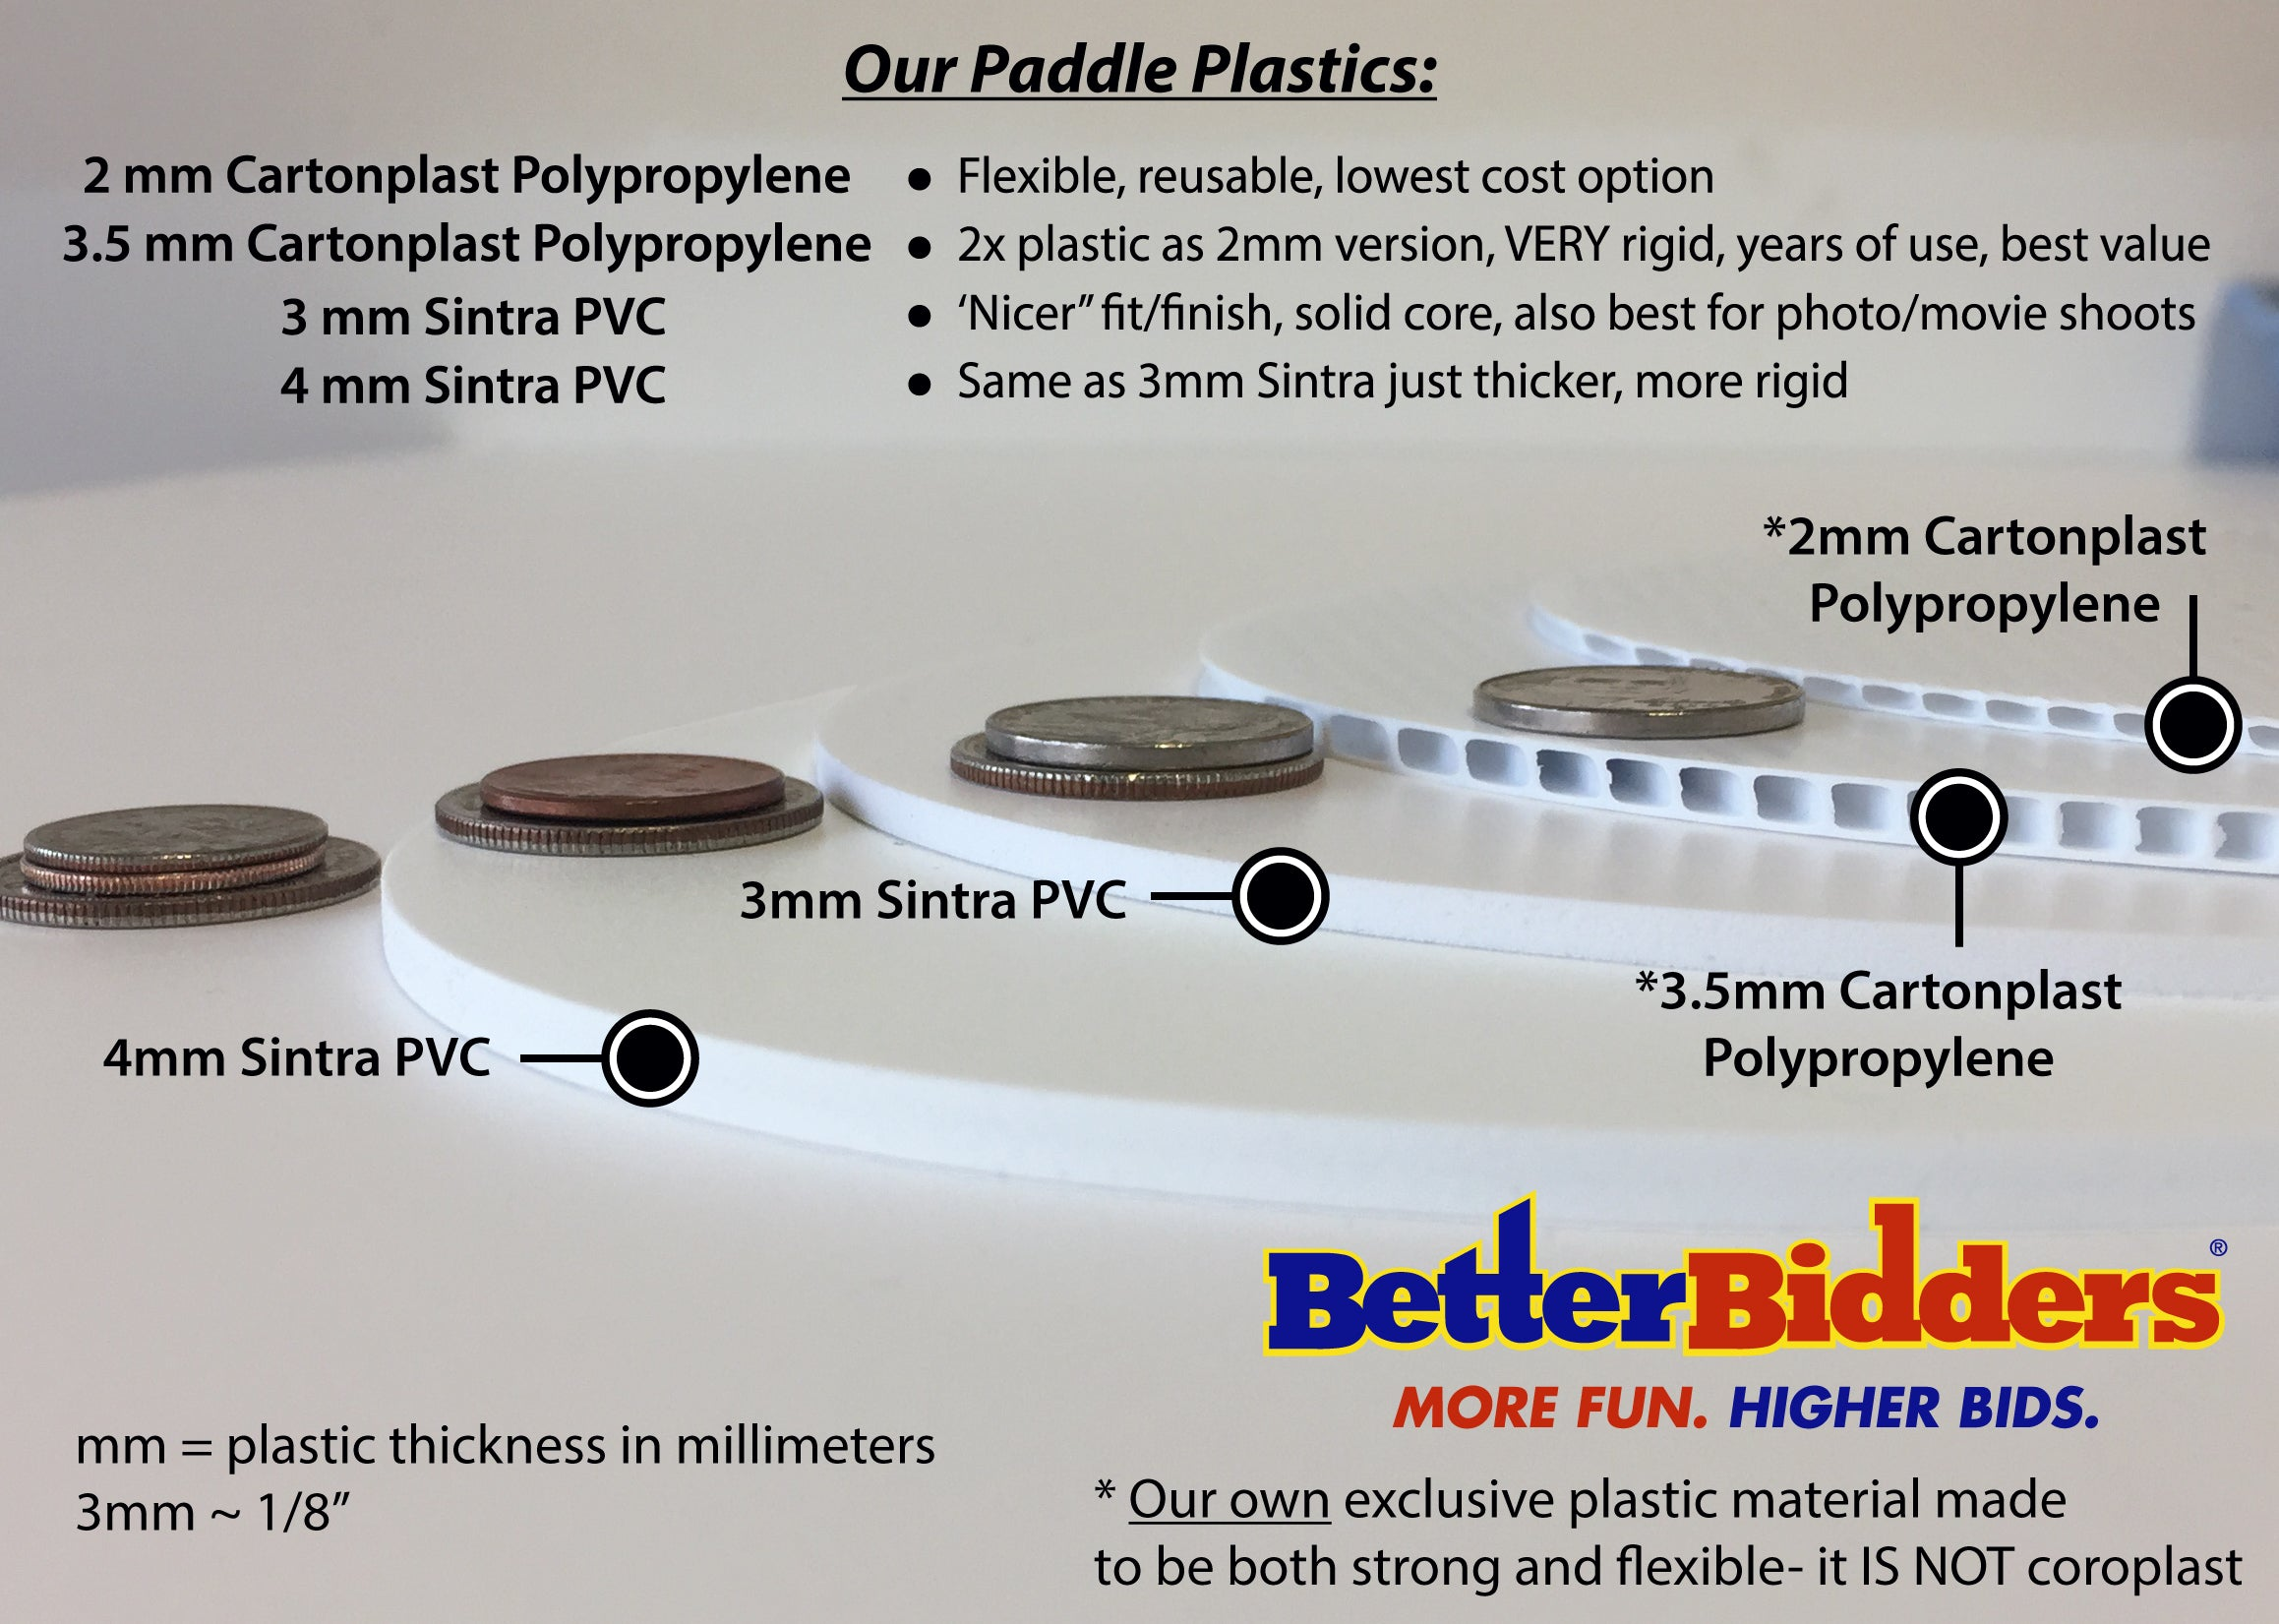 2mm Cartonplast, 3.5mm Cartonplast, 3mm Sintra (brand) PVC, 4mm Sintra (brand) PVC, Injection molded (High-Impact polystyrene) are all plastics we use to produce all of our rigid paddle and signage products. Better materials make for better products!